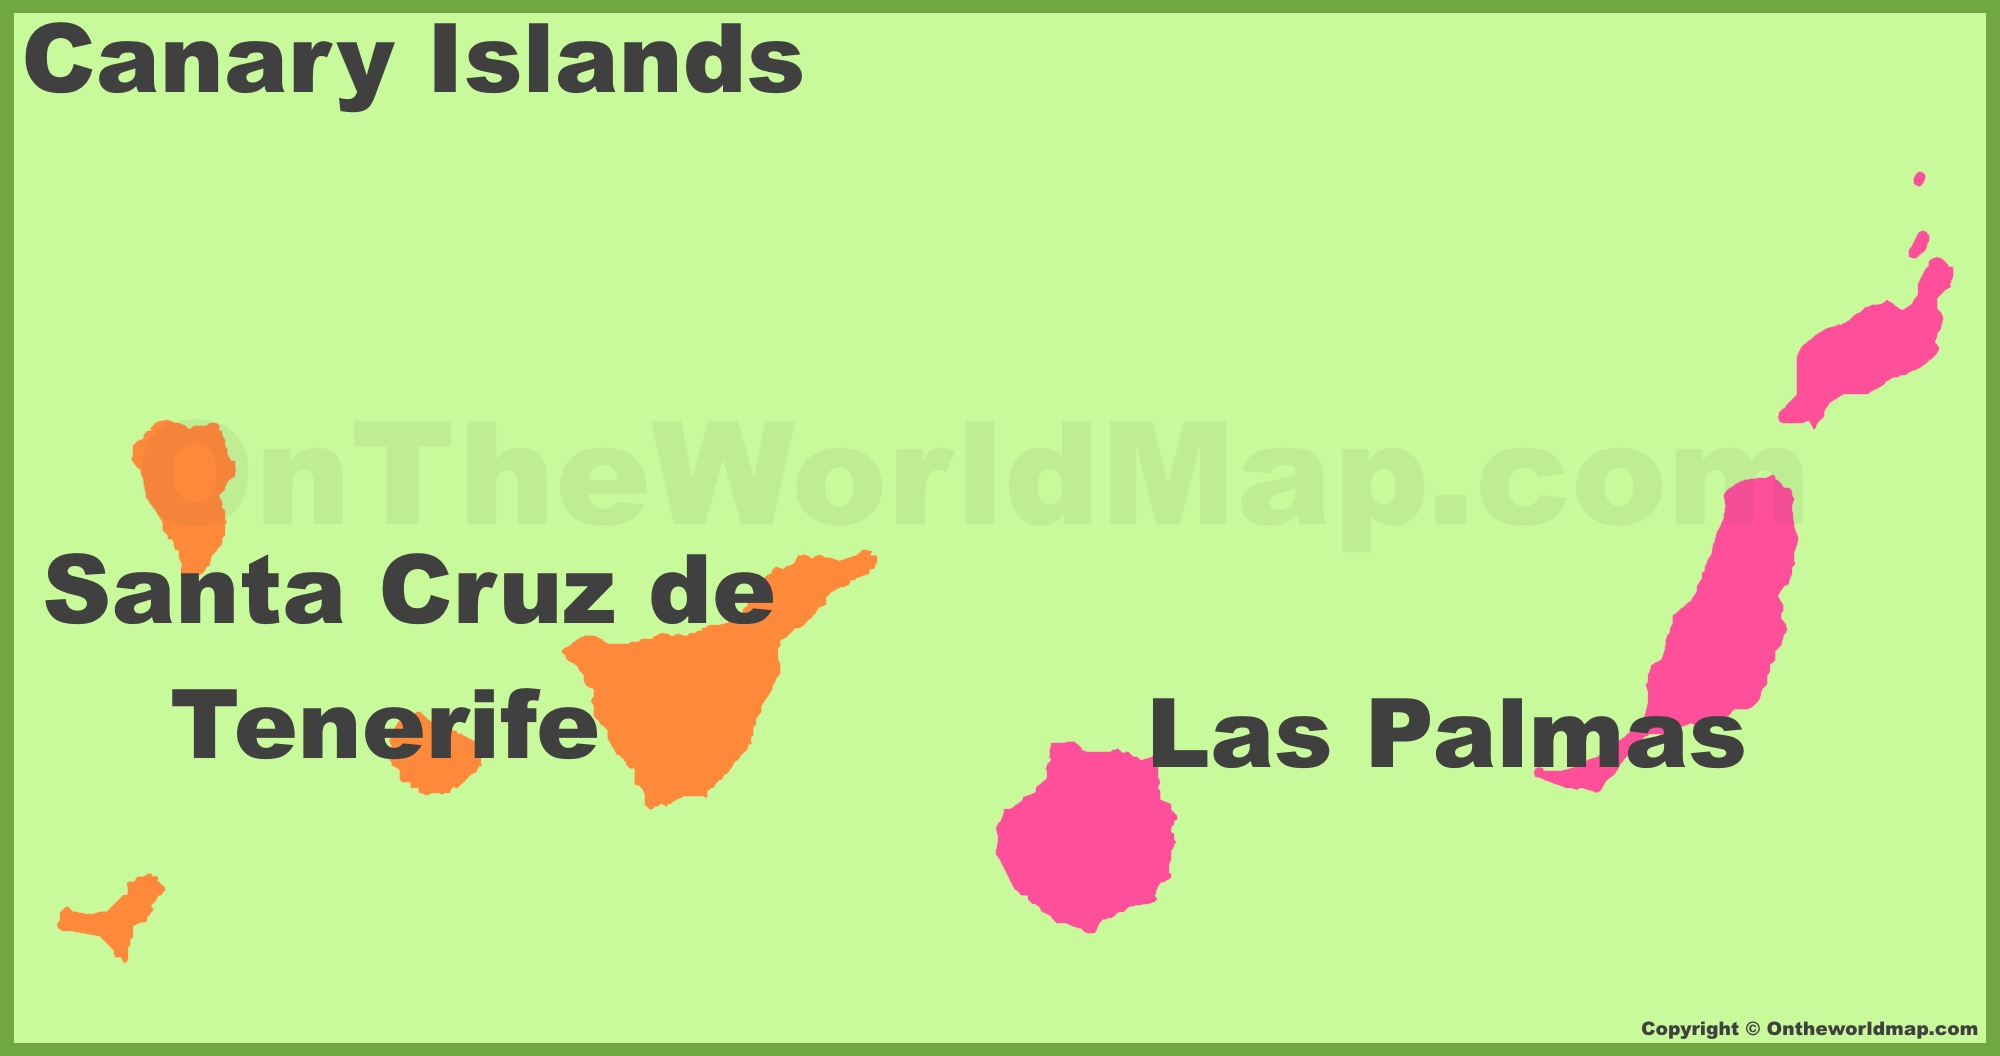 Canary Islands provinces map